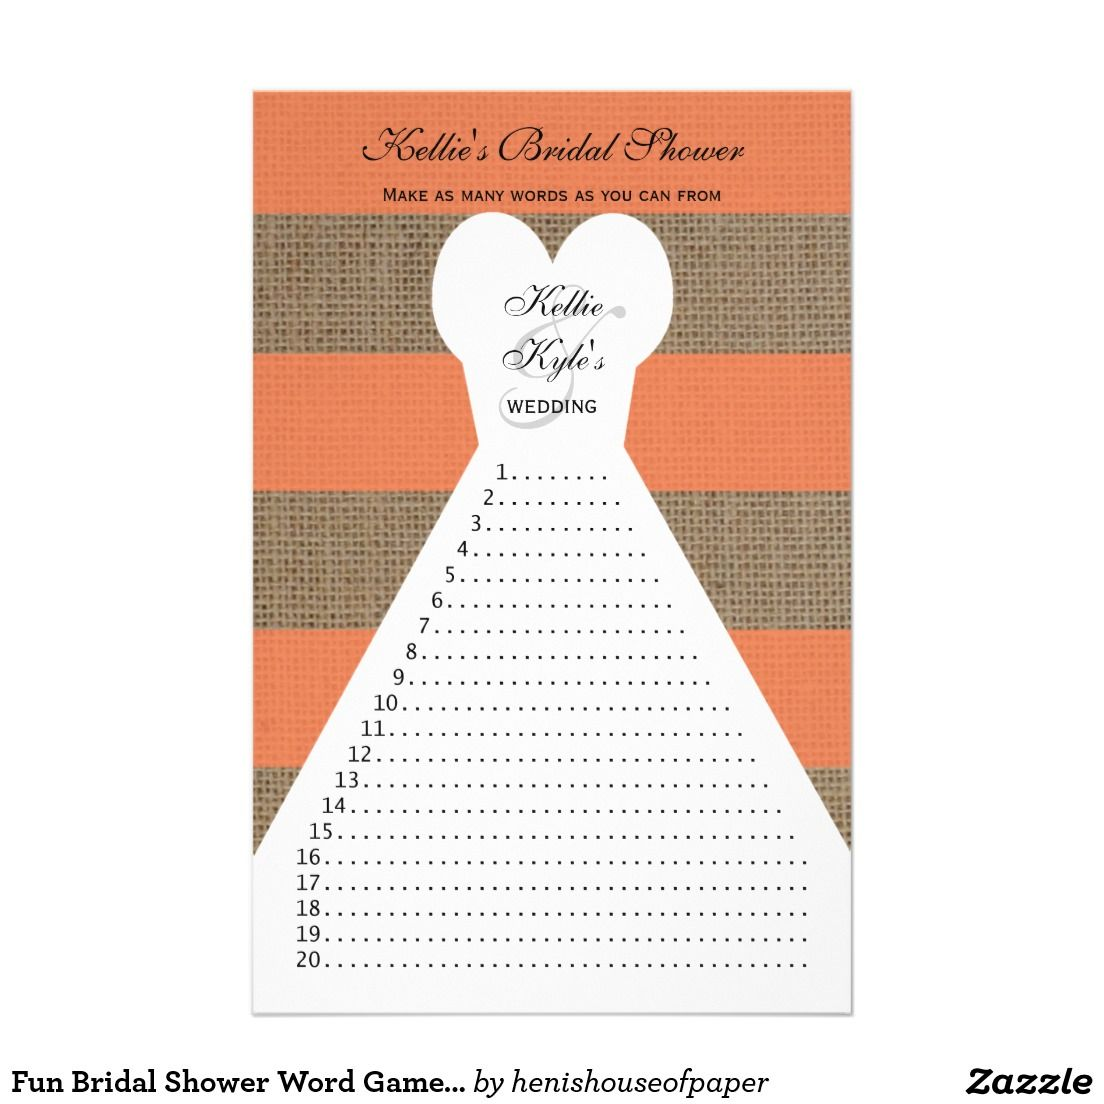 fun bridal shower word games coral flyer flyers fun and word fun bridal shower word games coral 5 5 x 8 5 flyer